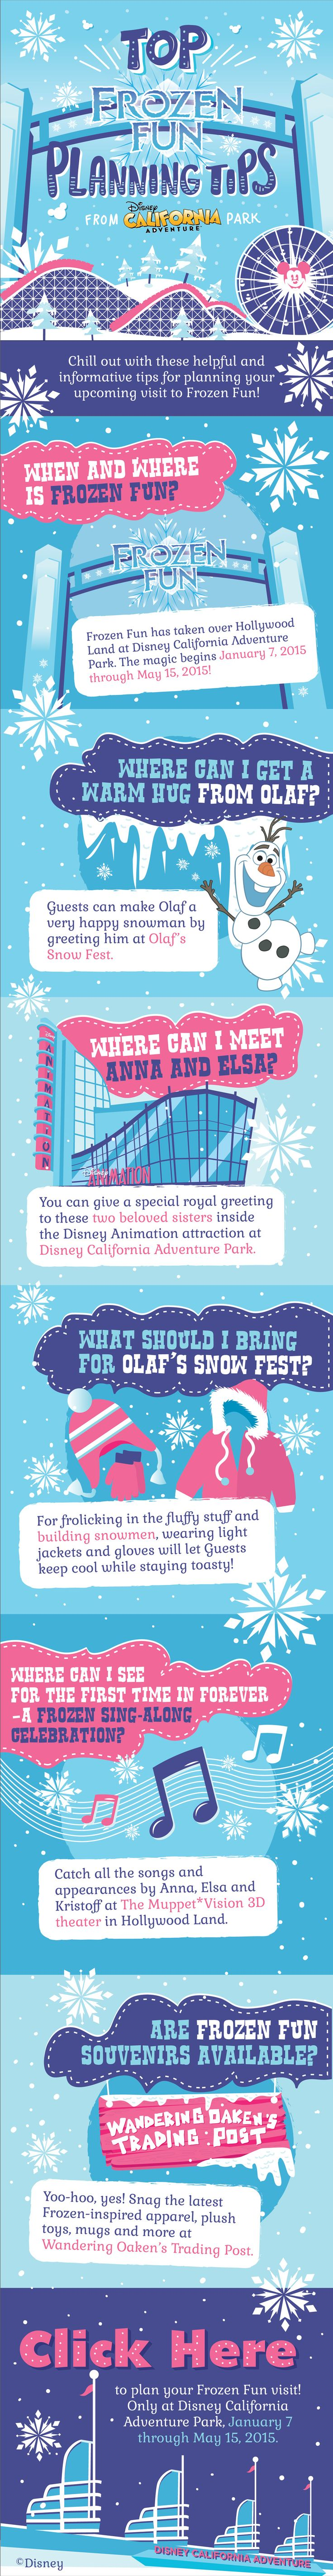 Plan your Frozen Fun experience at Disney California Adventure with this handy guide!